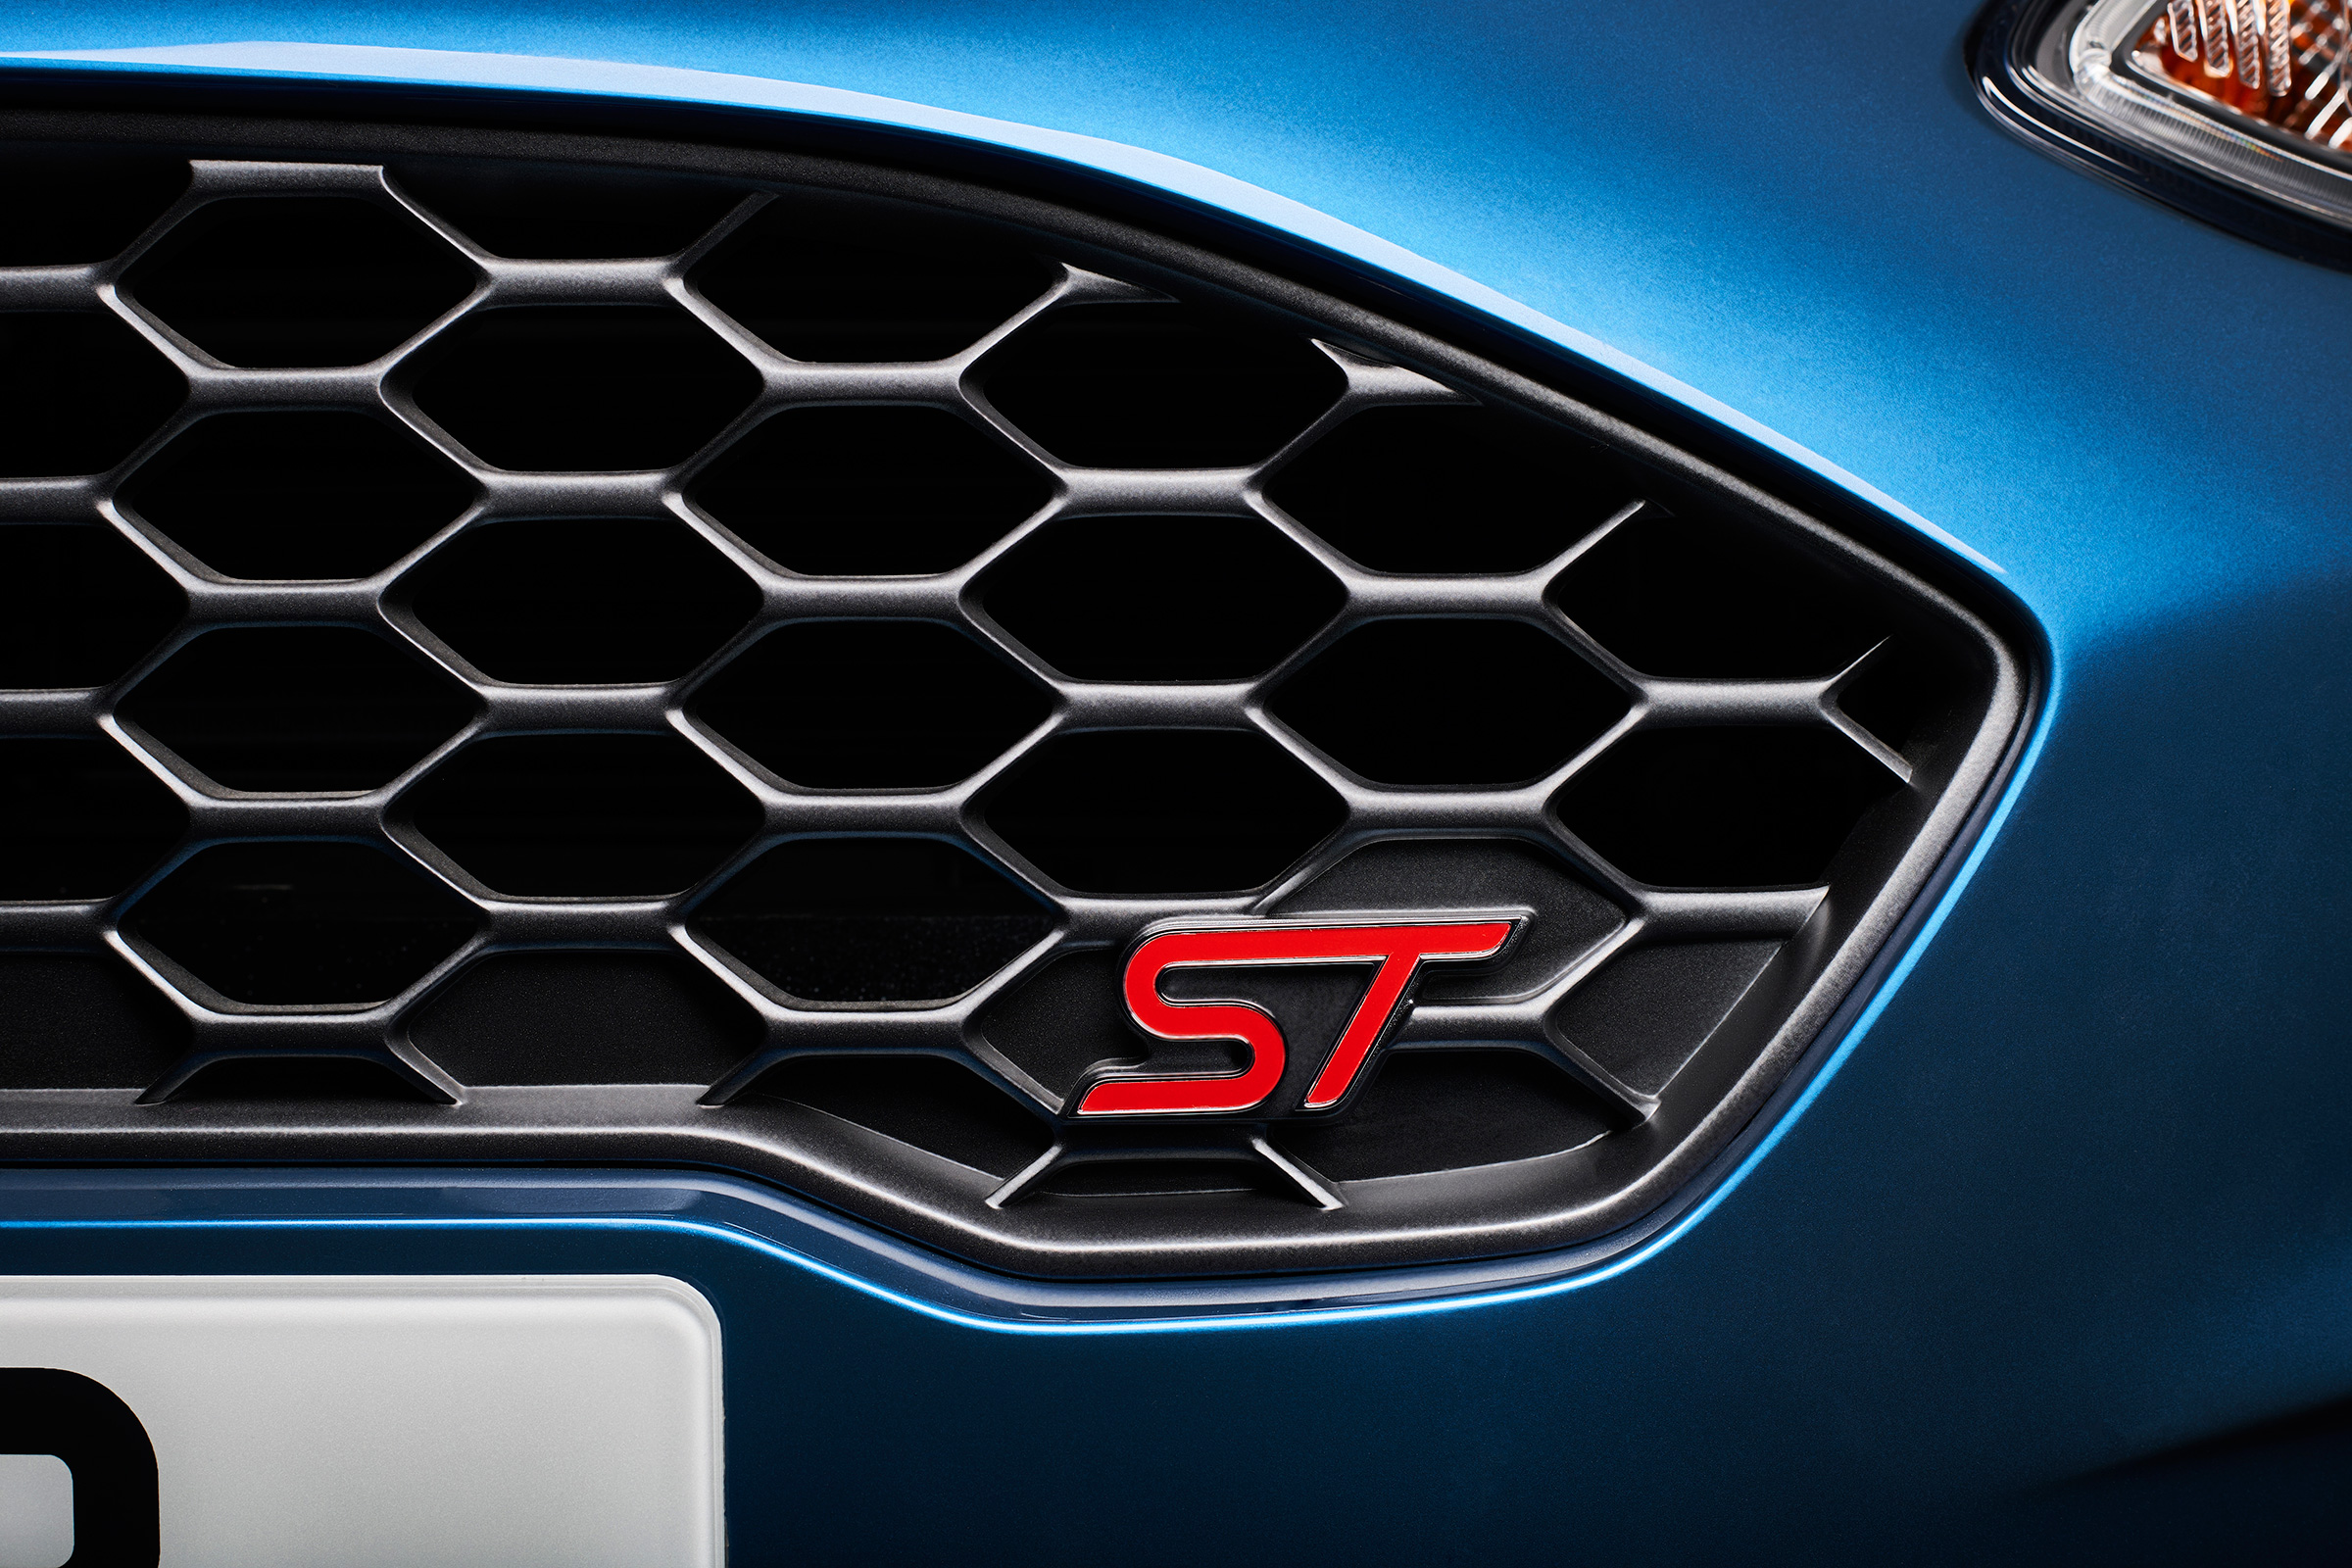 2018 Ford Fiesta ST Exterior View Grille And Badge (Photo 8 of 14)